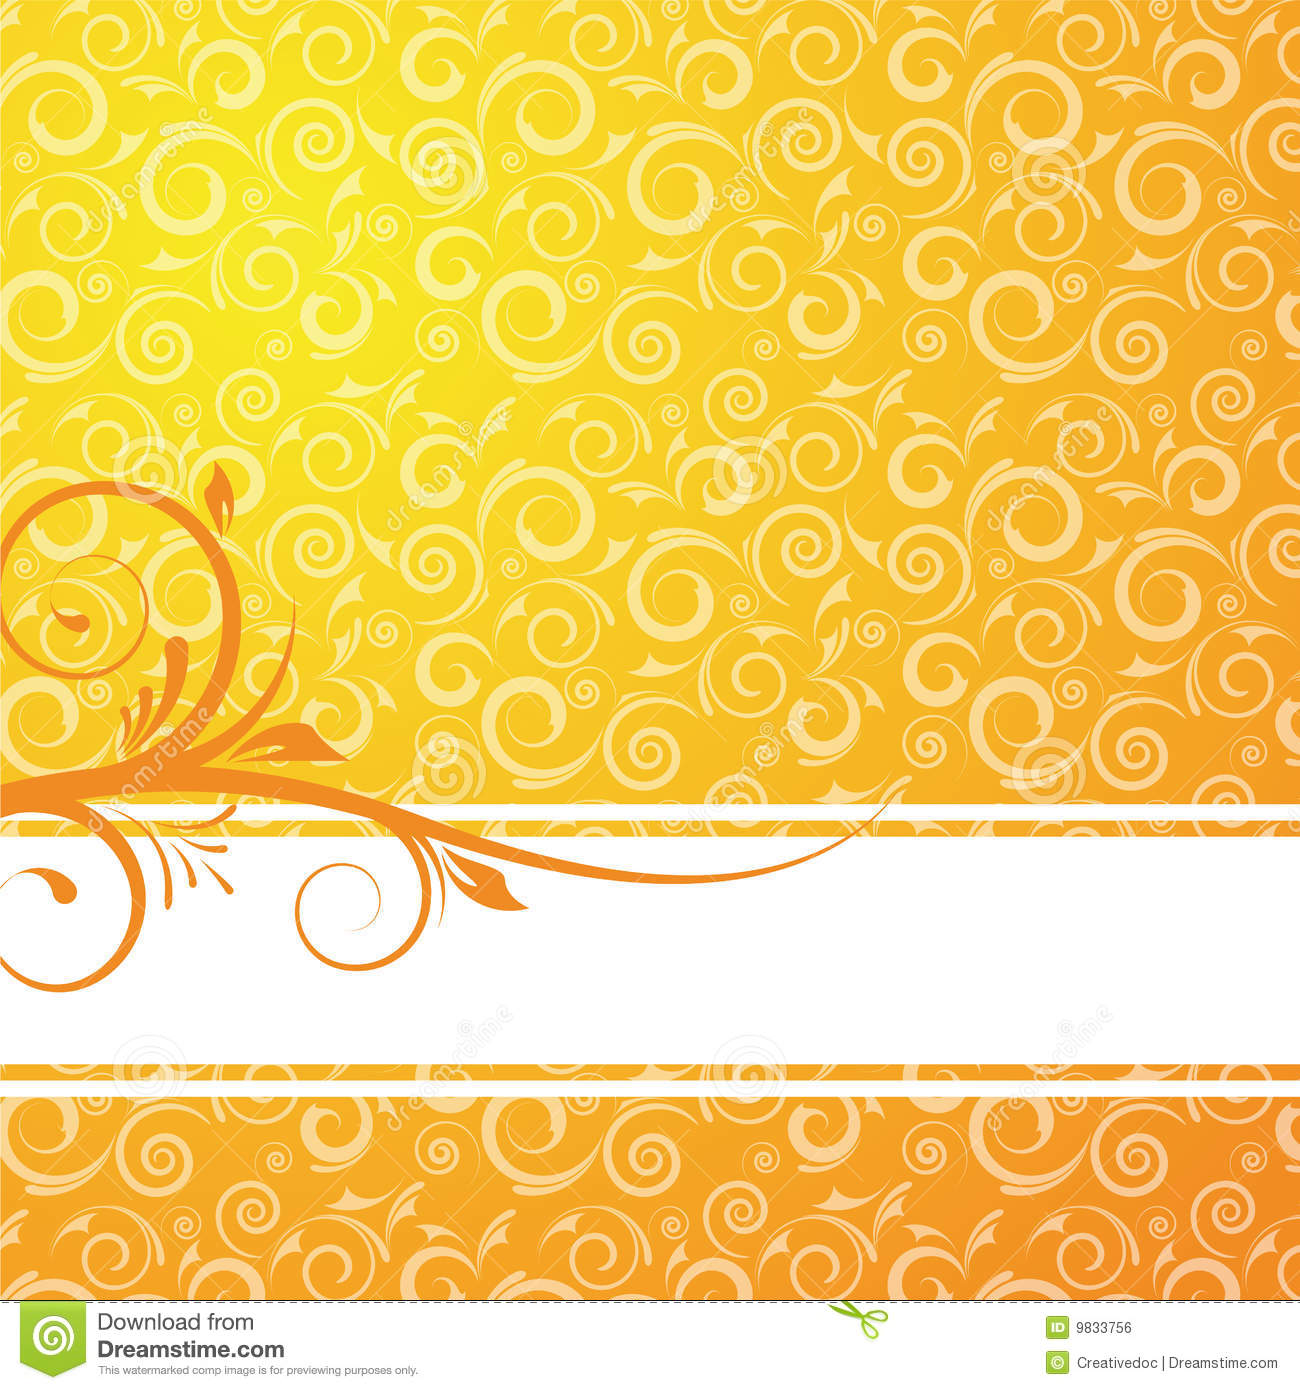 Floral background for design royalty free stock image image 9833756